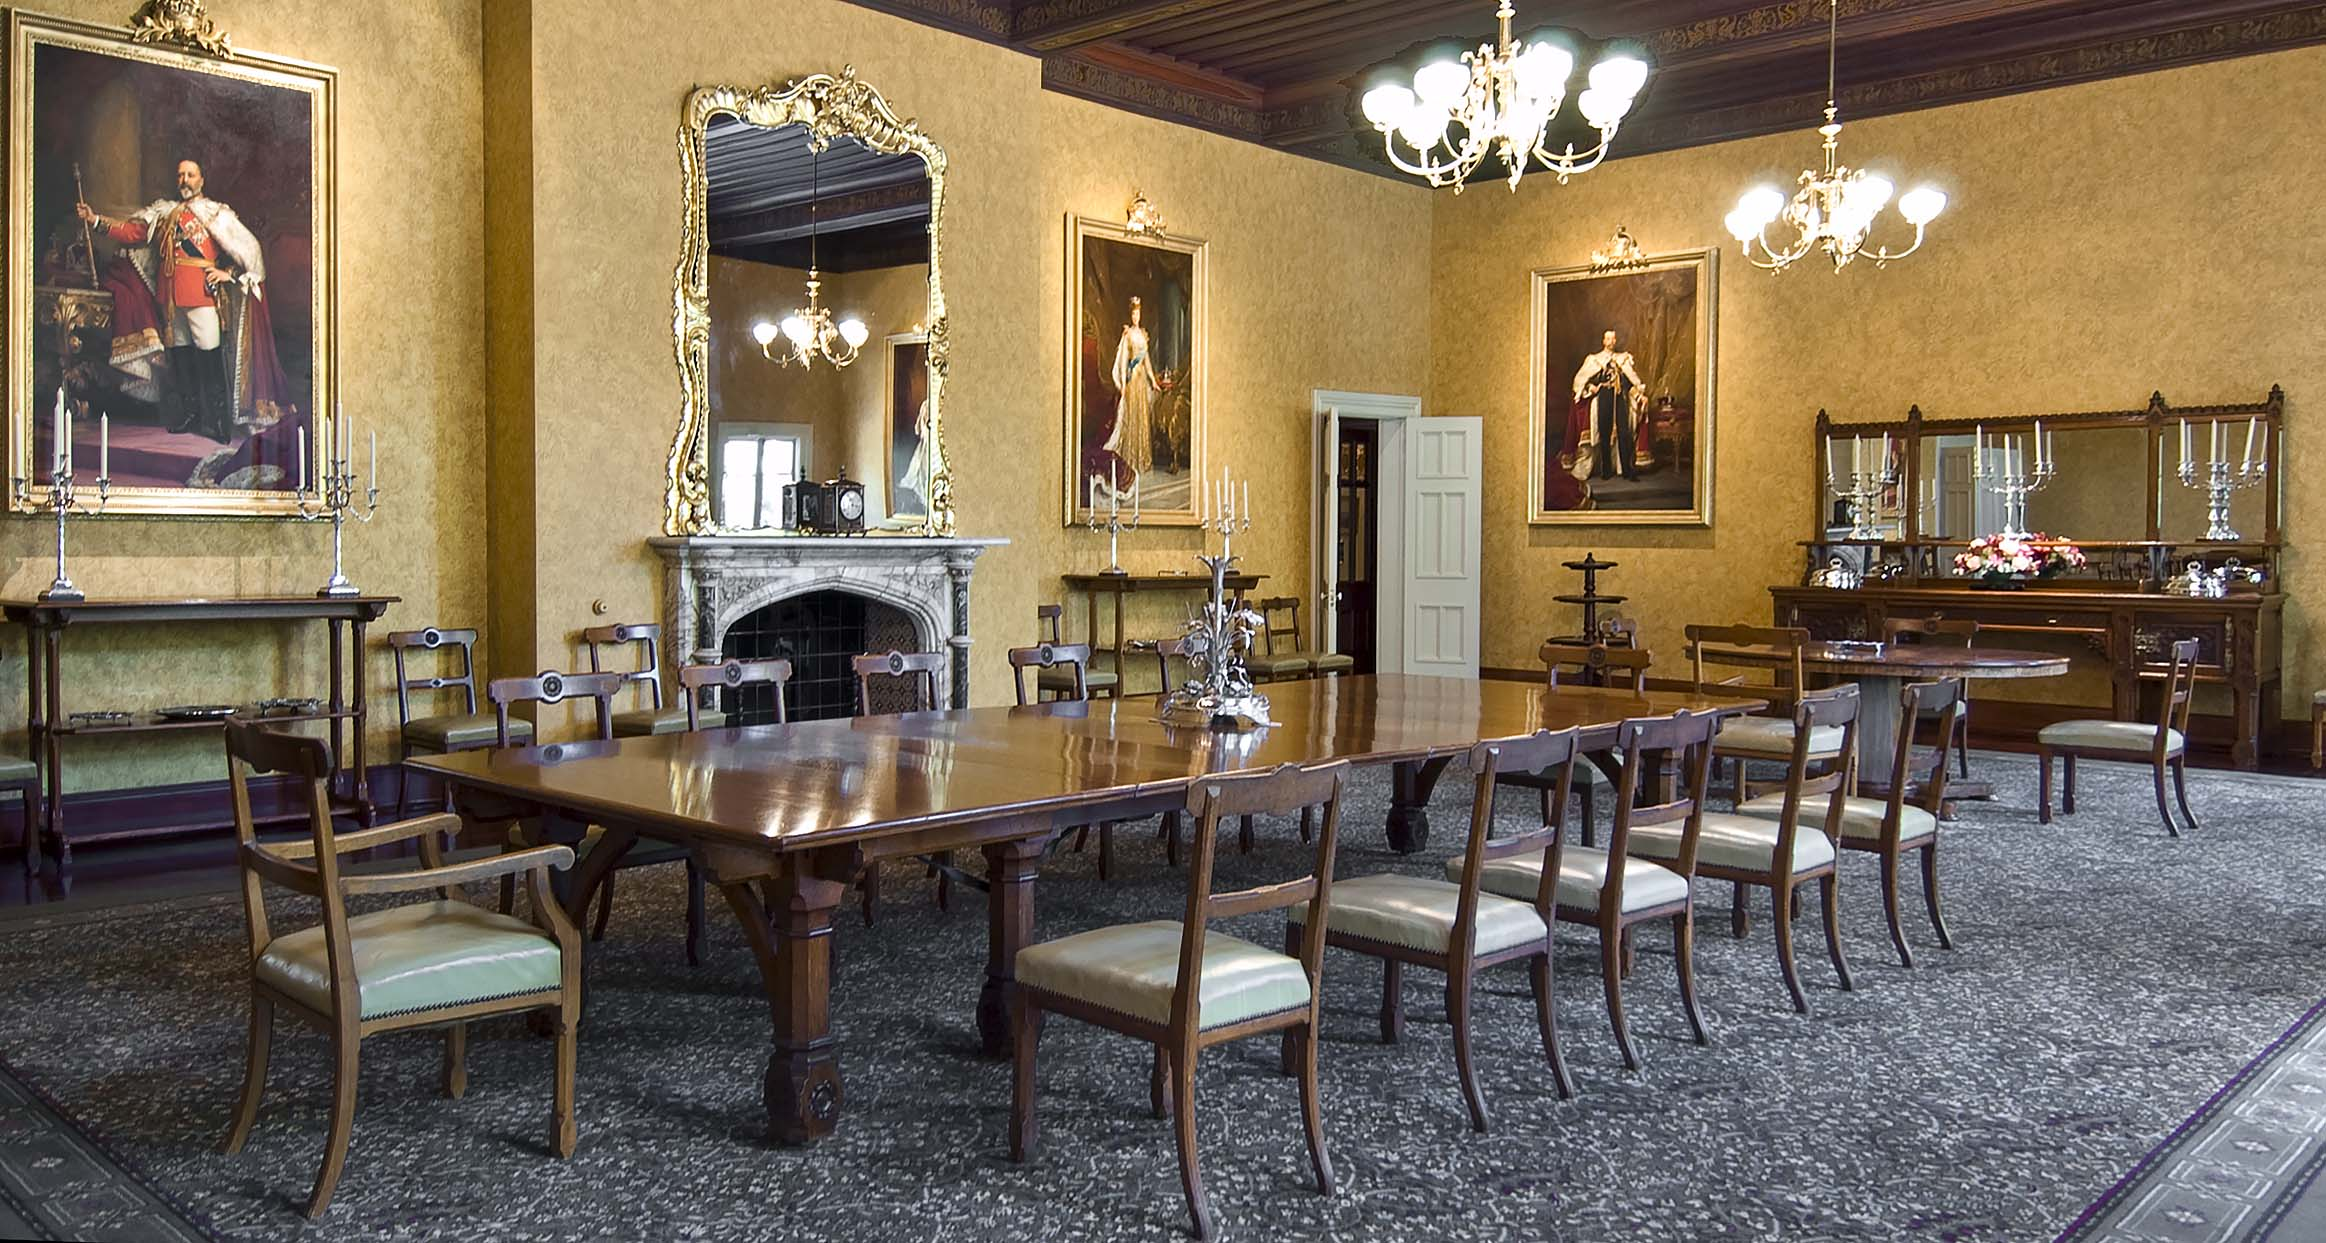 FileGovernment House Dining Room